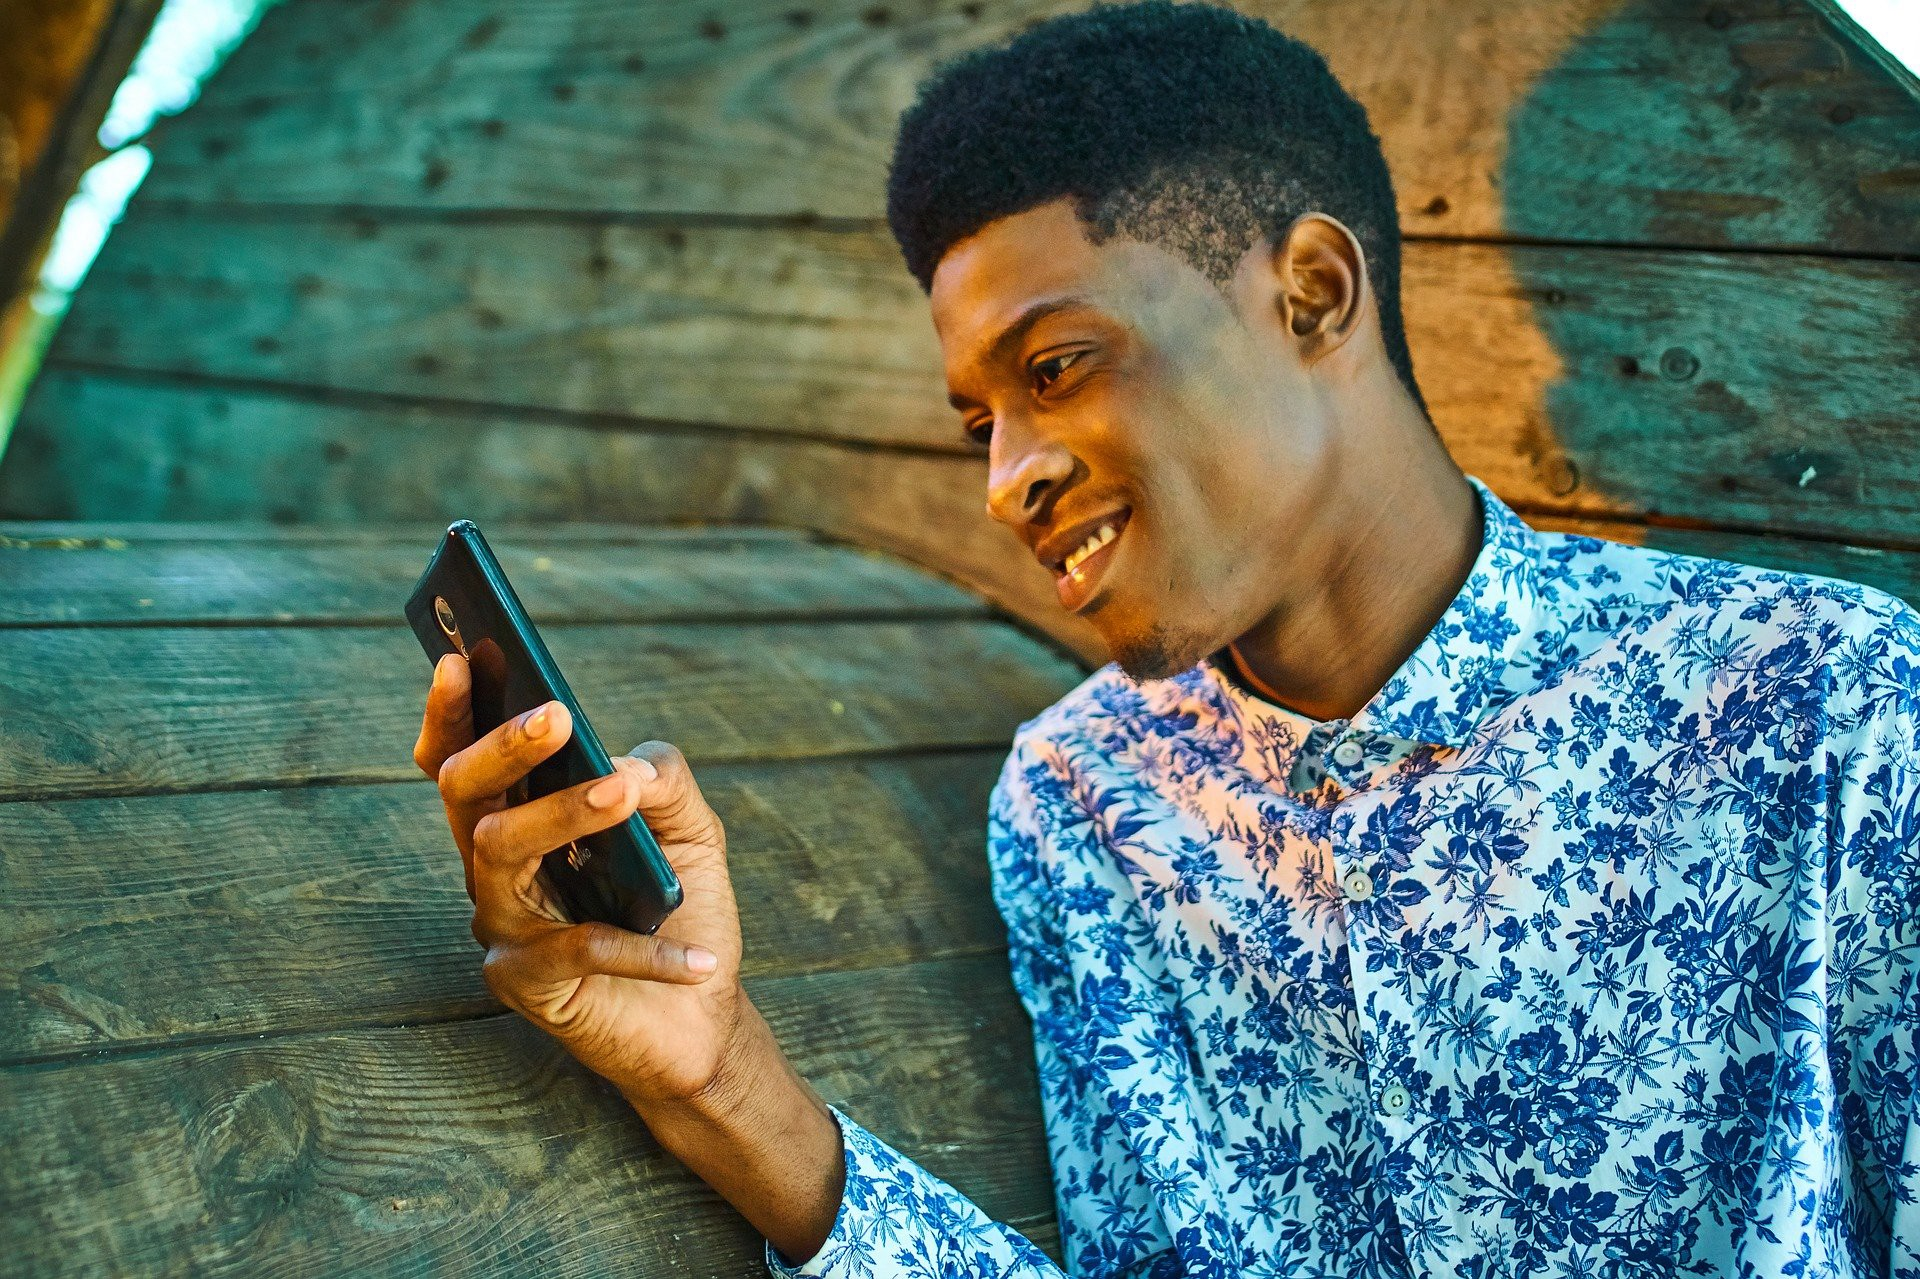 A gentleman holding his smartphone while smiling